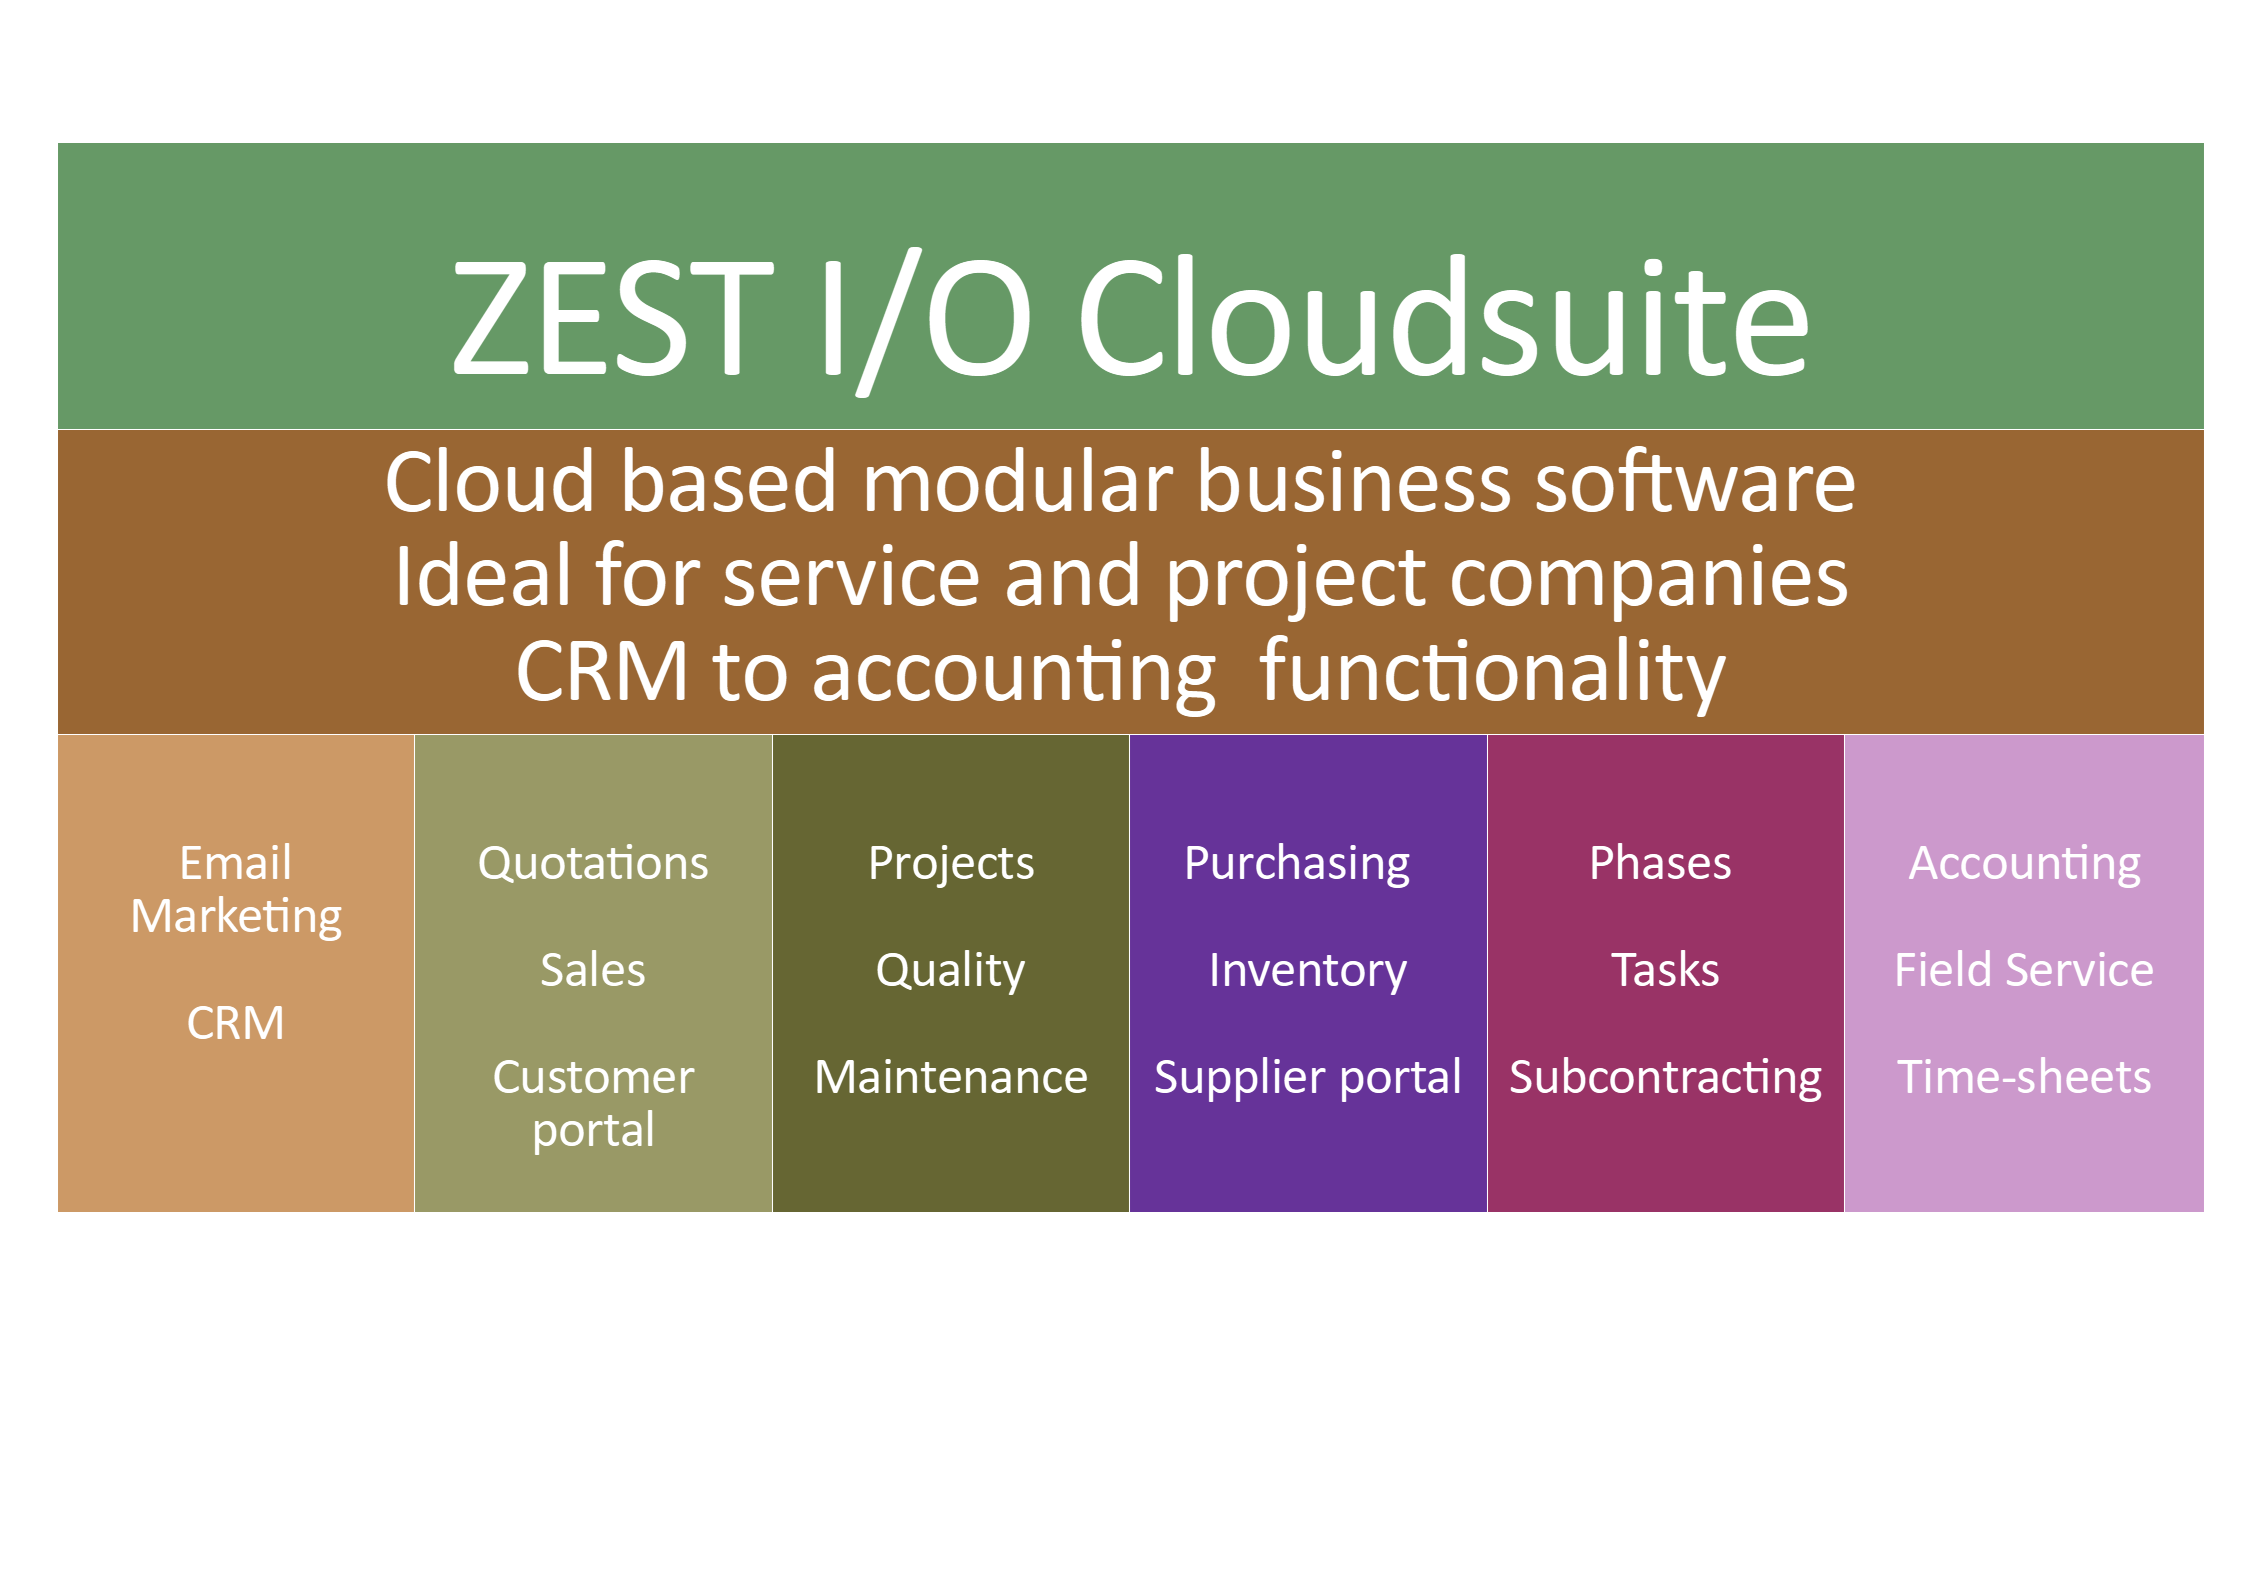 ZEST I-O Cloud software for project companies